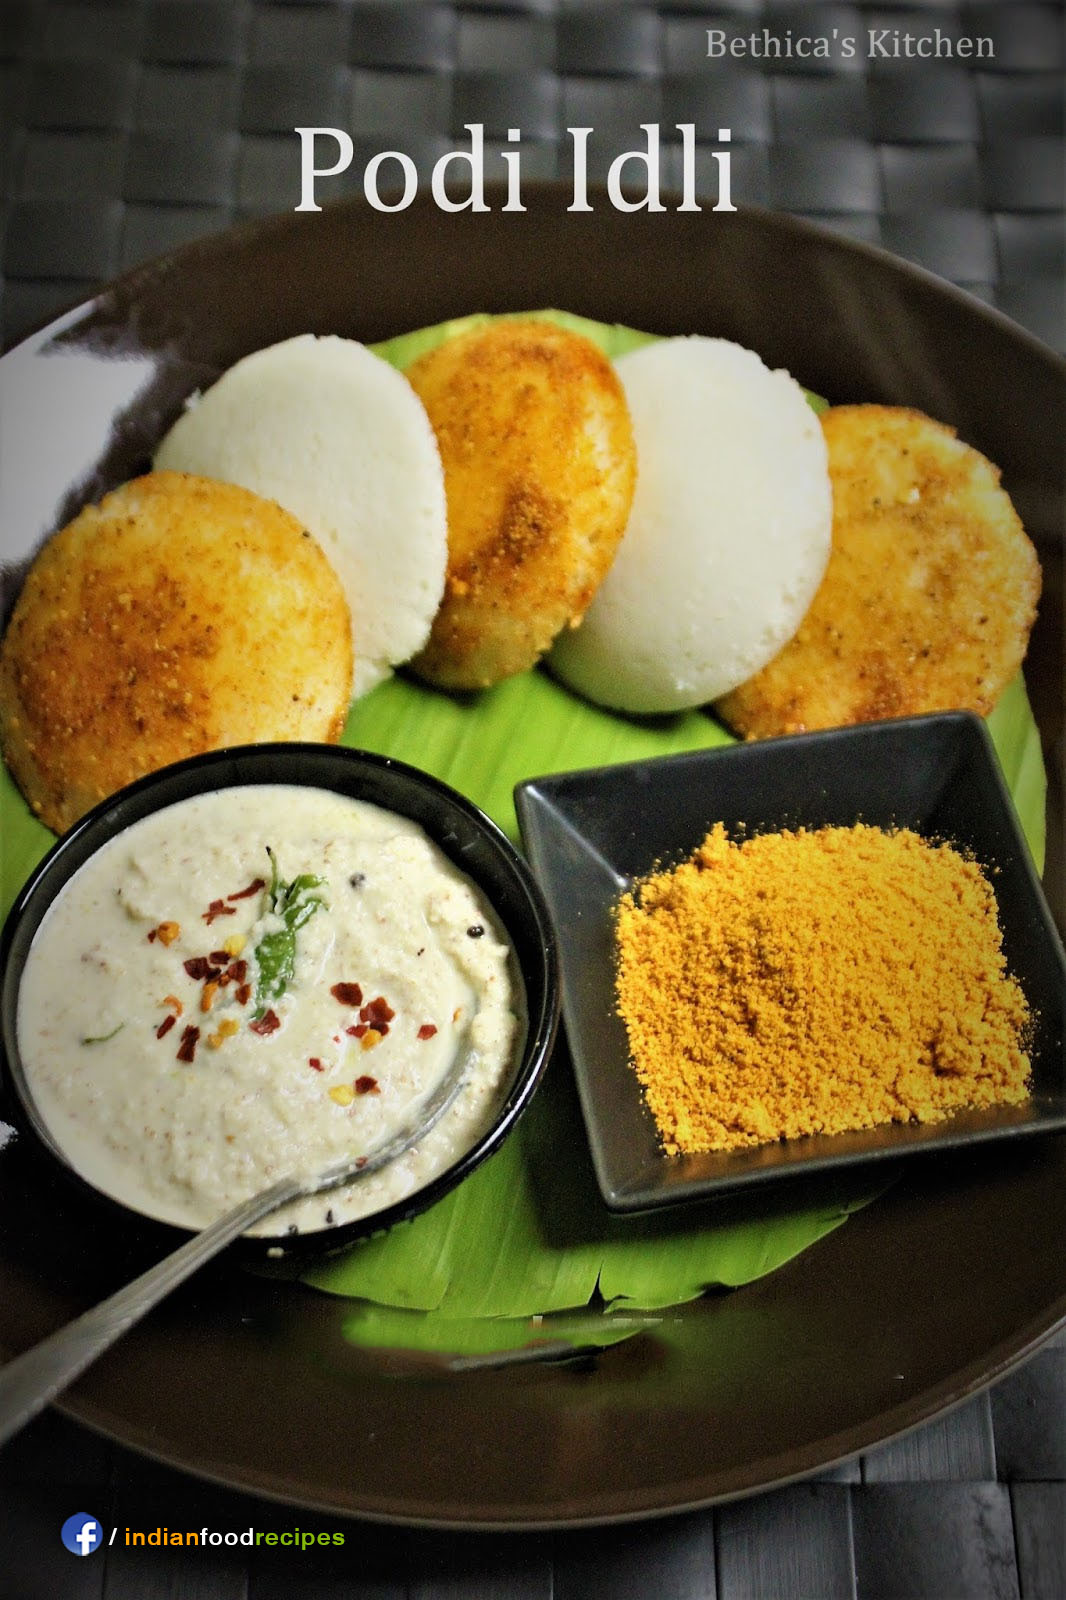 Podi Idli recipe step by step pictures